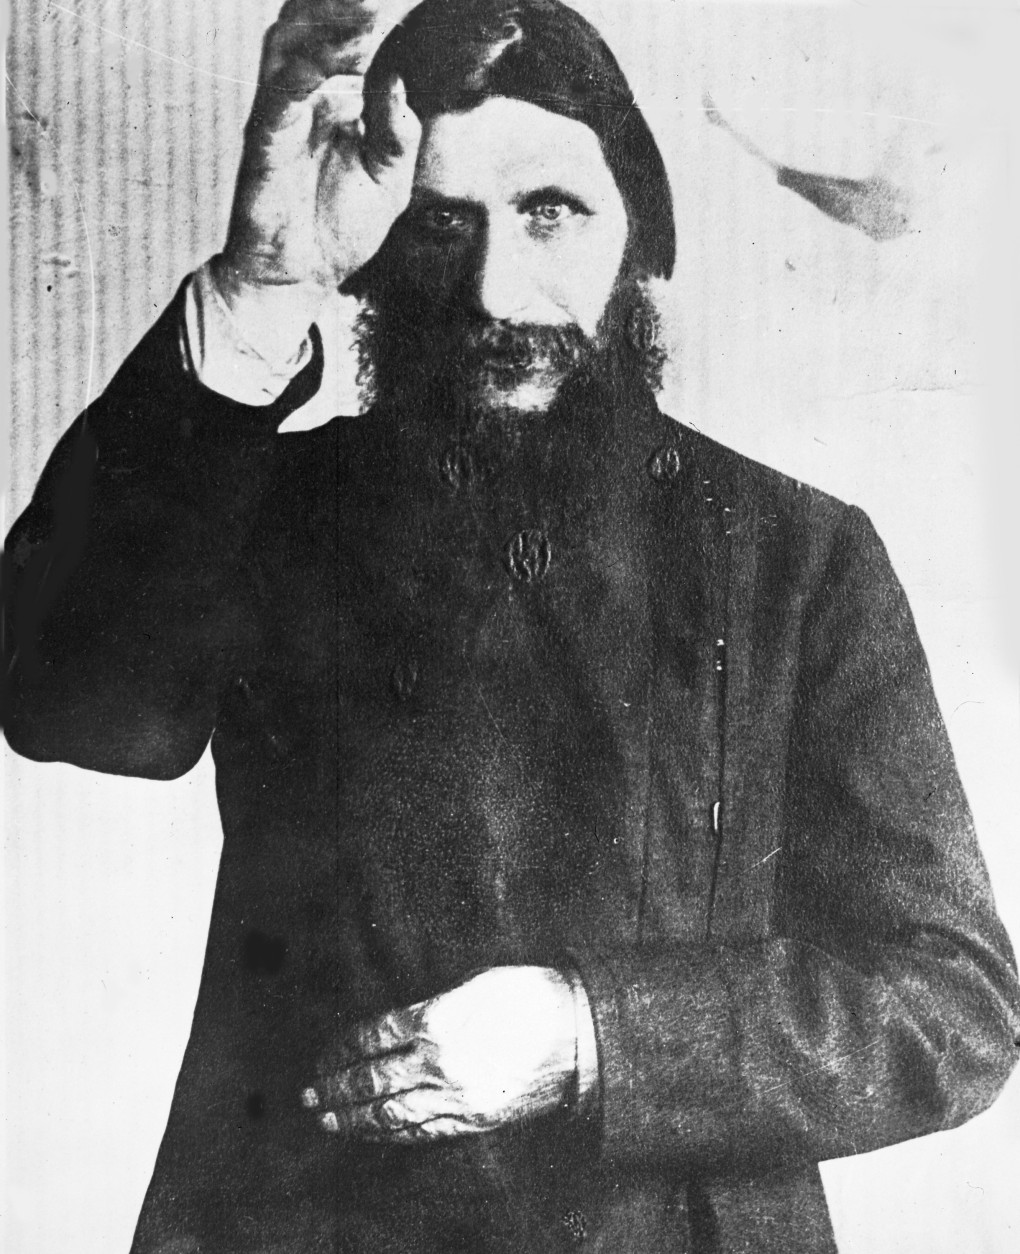 Undated photo of Rasputin, the self-styled monk who was killed 1916 by Prince Youssoupoff, because of his evil influence of the Russian Royal Family. (AP Photo)